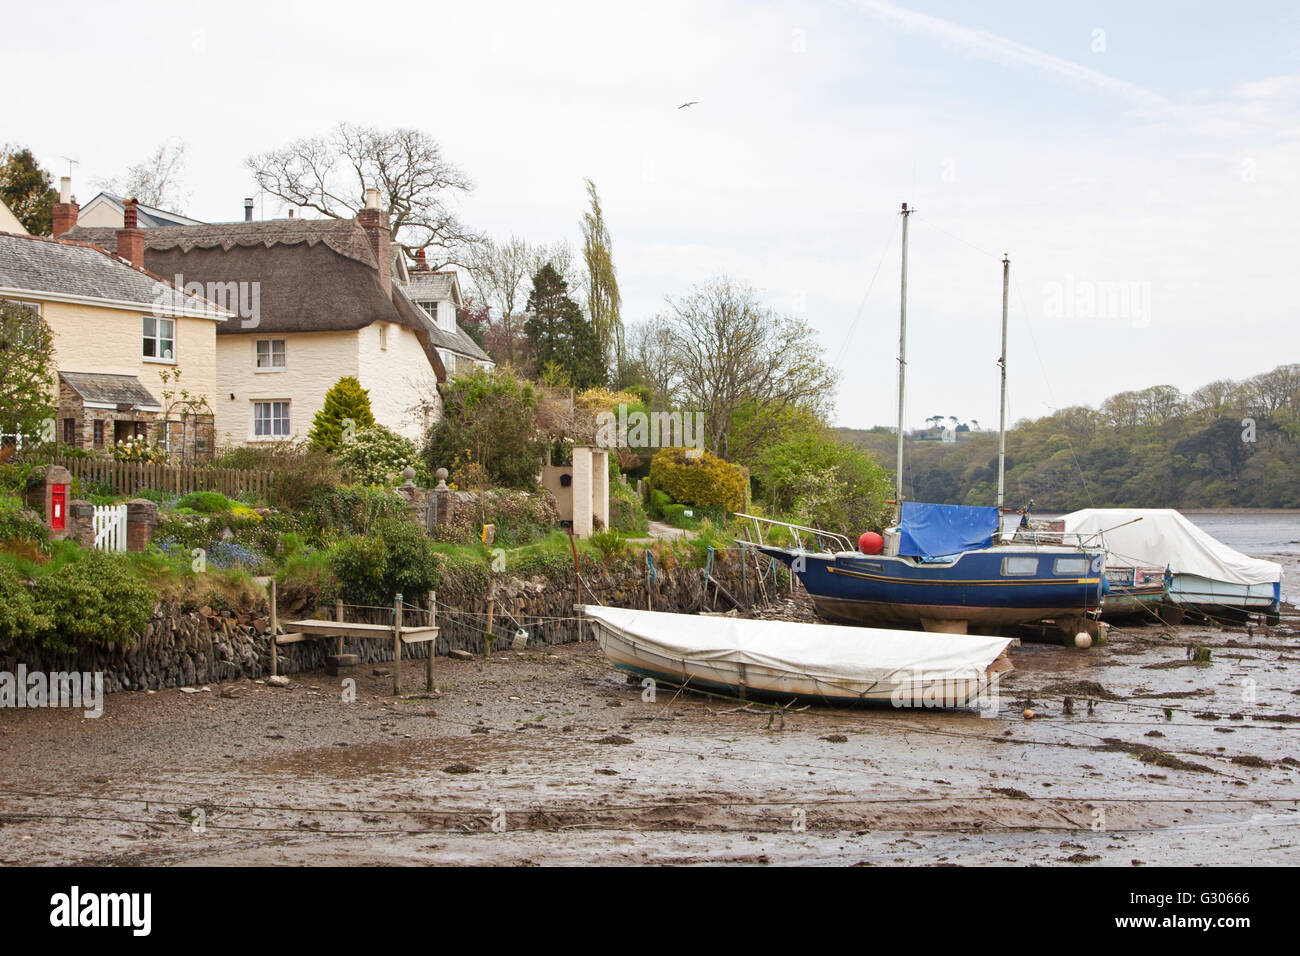 The small natural harbour at St Clement village in Cornwall at low tide on the Tresillian river Stock Photo